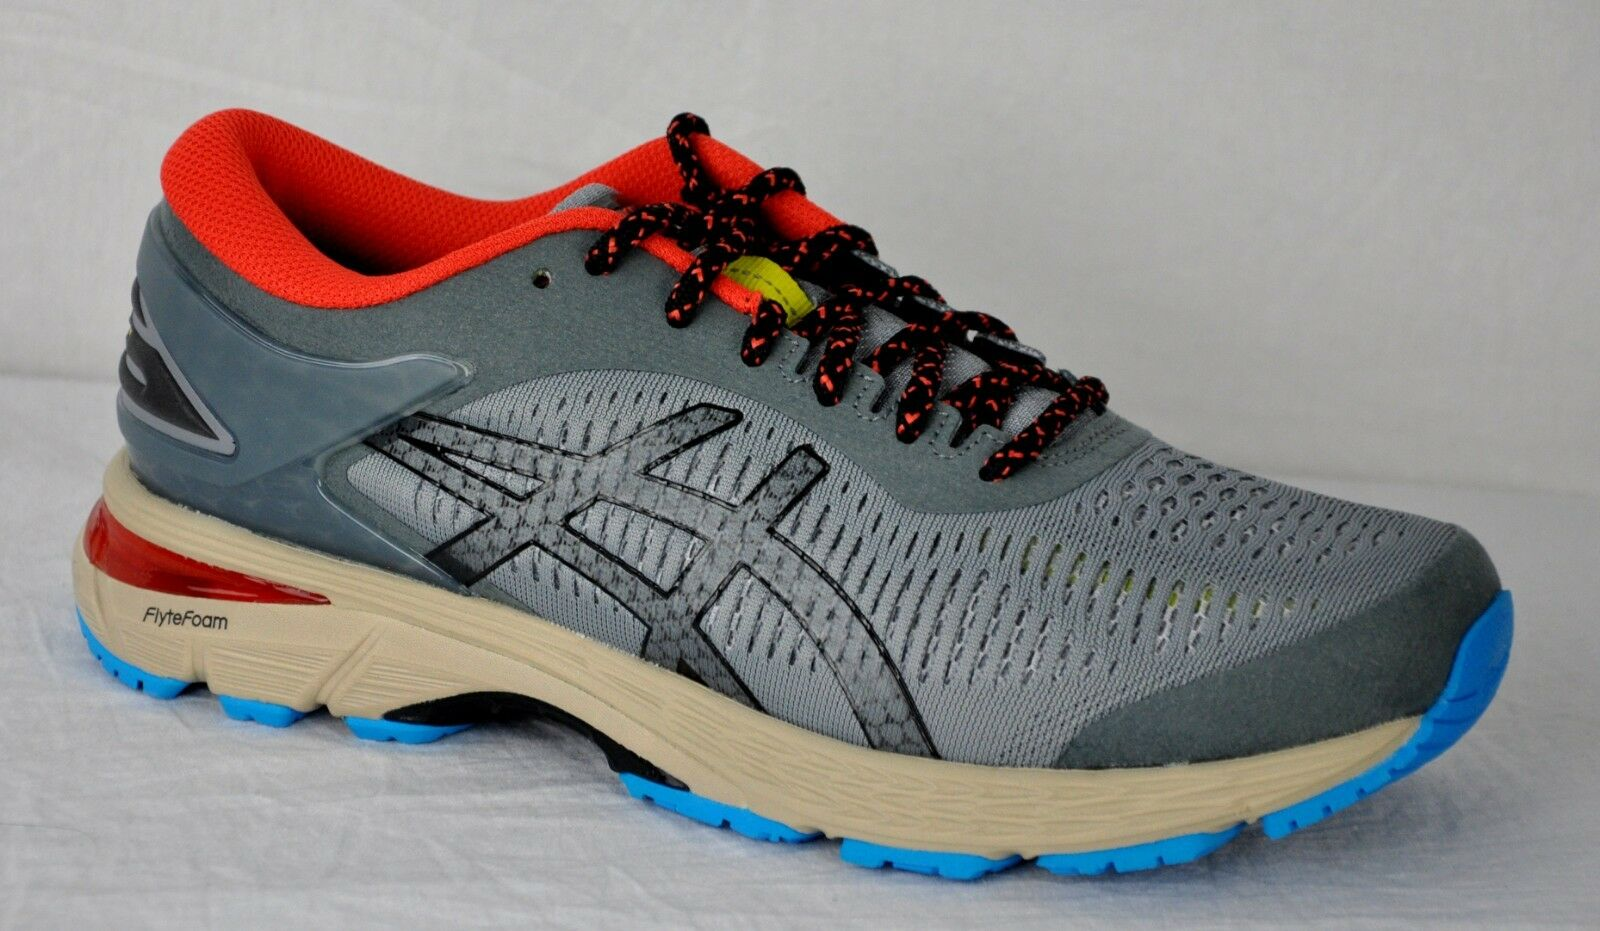 Asics Men's Gel Gel Gel Kayano 25 Trail Running shoes 1021A128 Stone Grey Blk Size 10 c3cff9